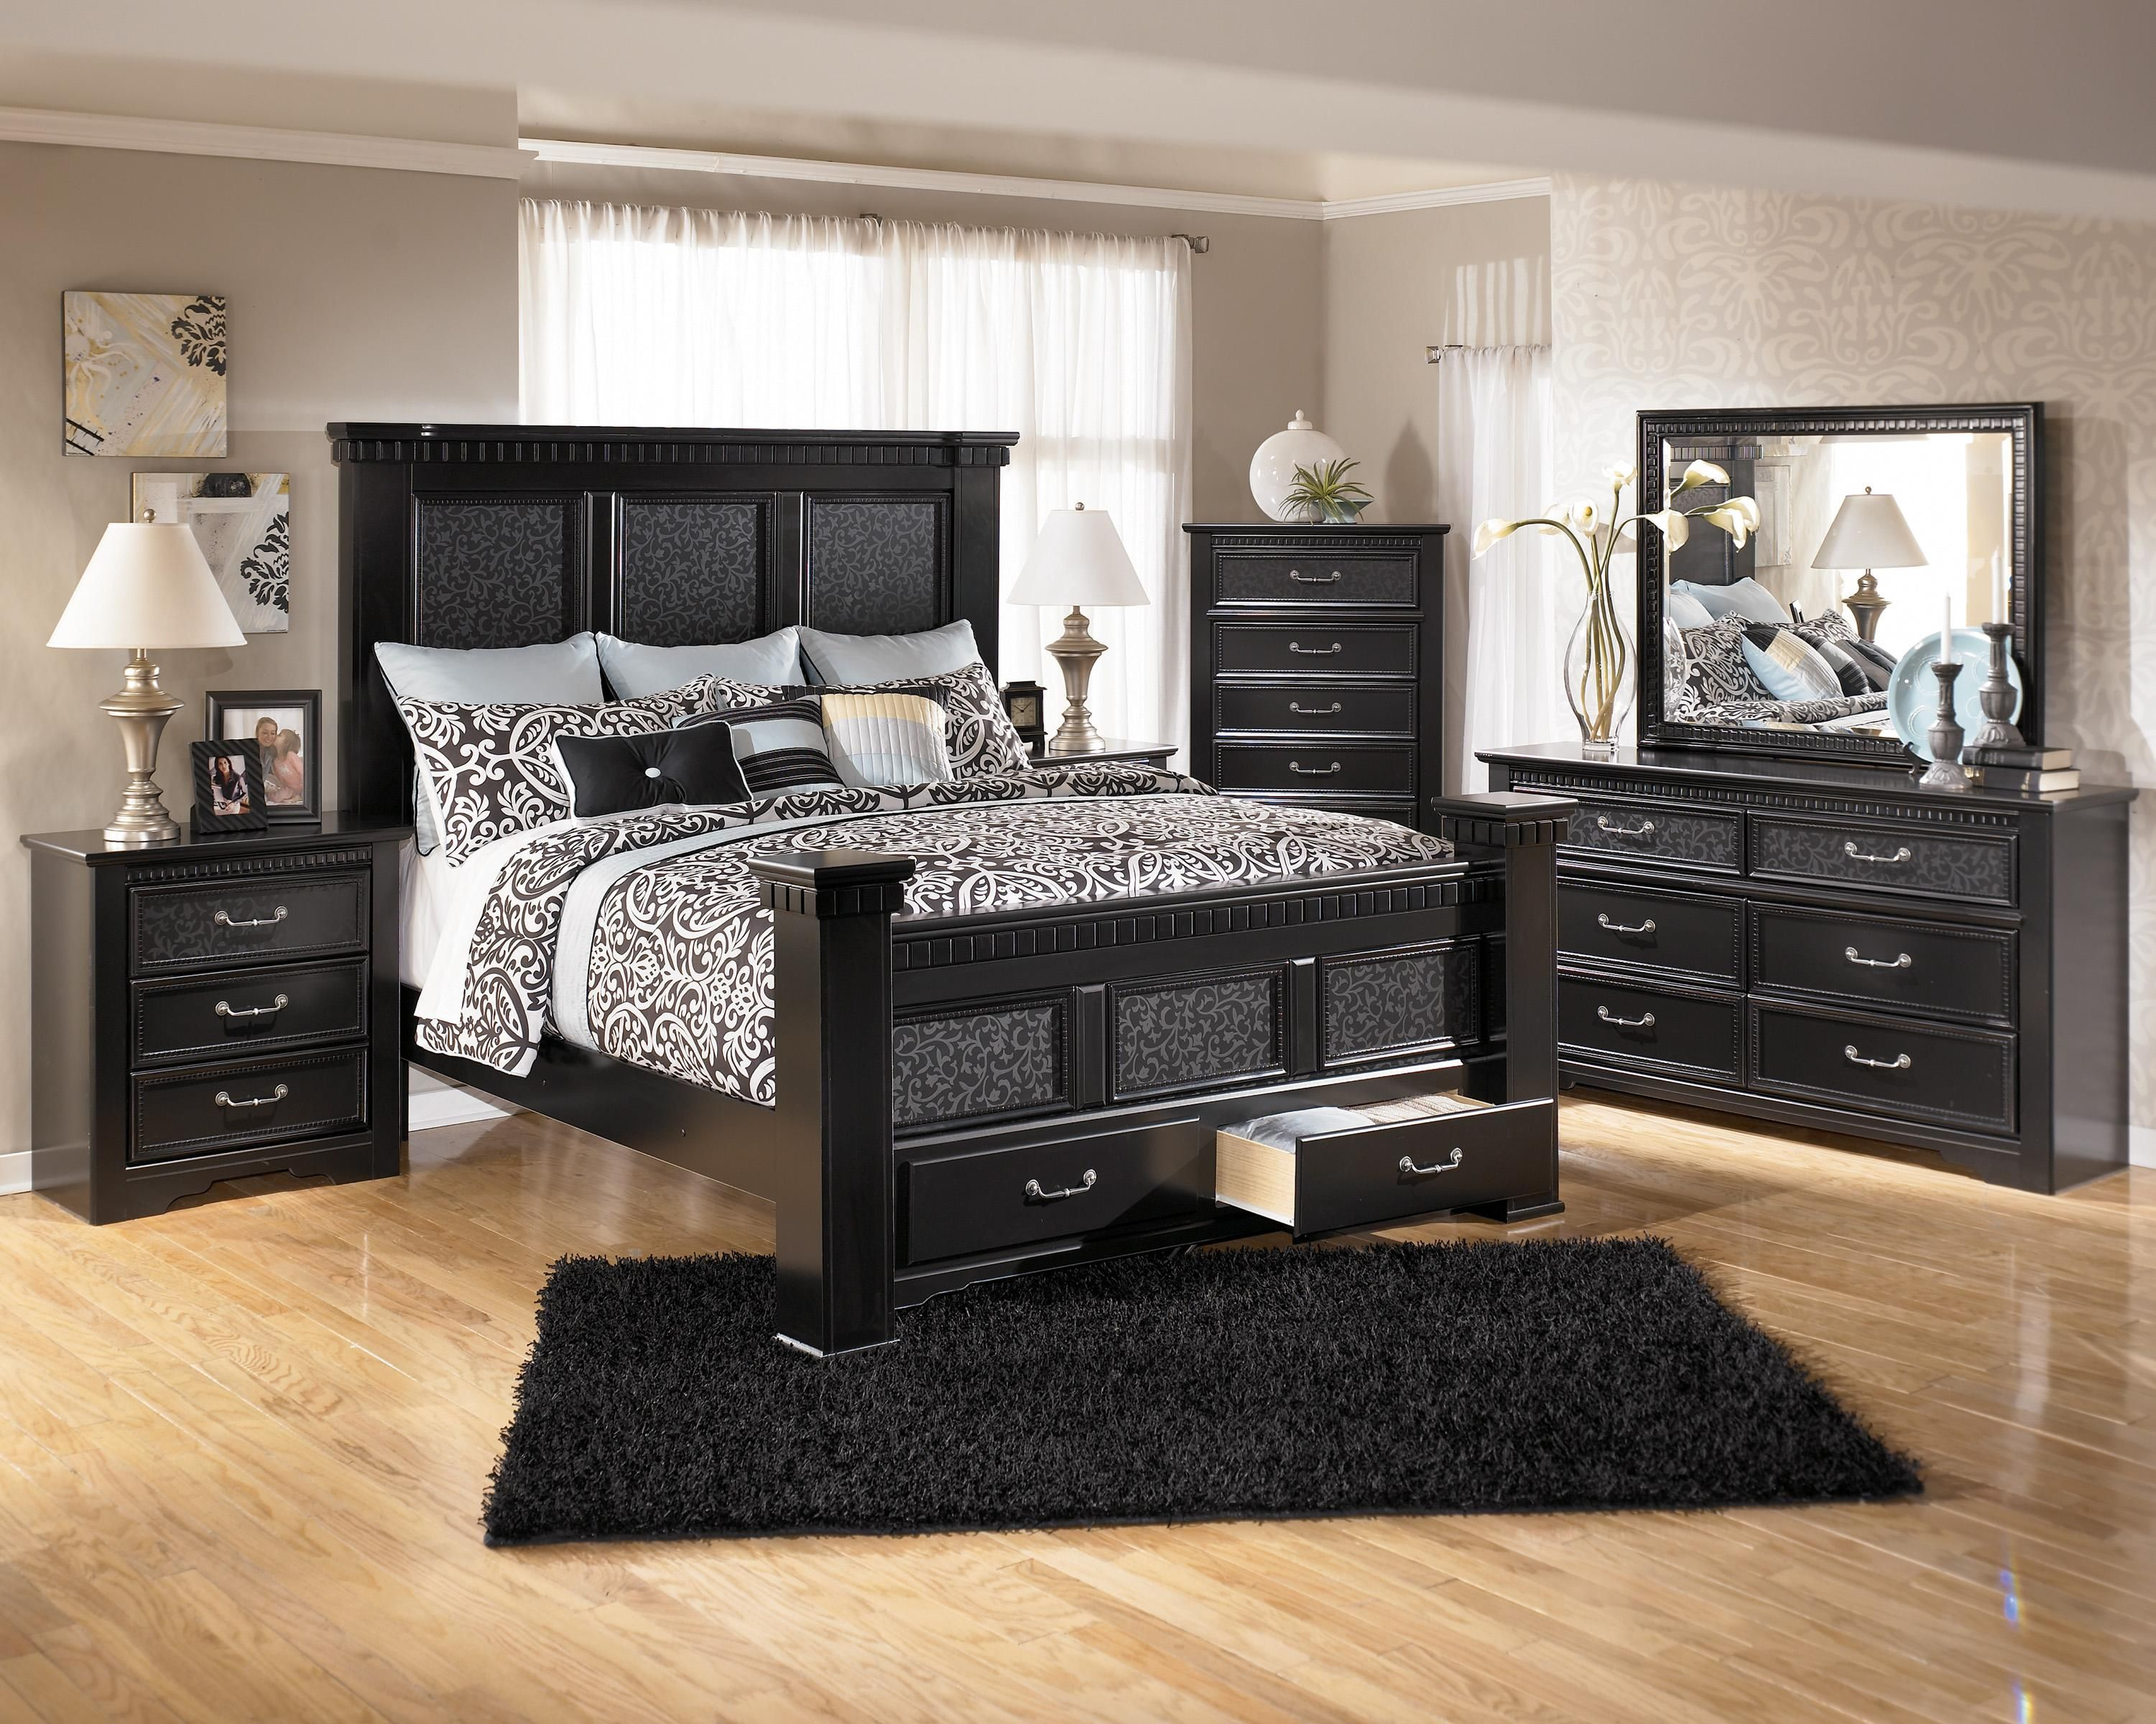 Picture of: Ashley Furniture Bed With Storage Pictures